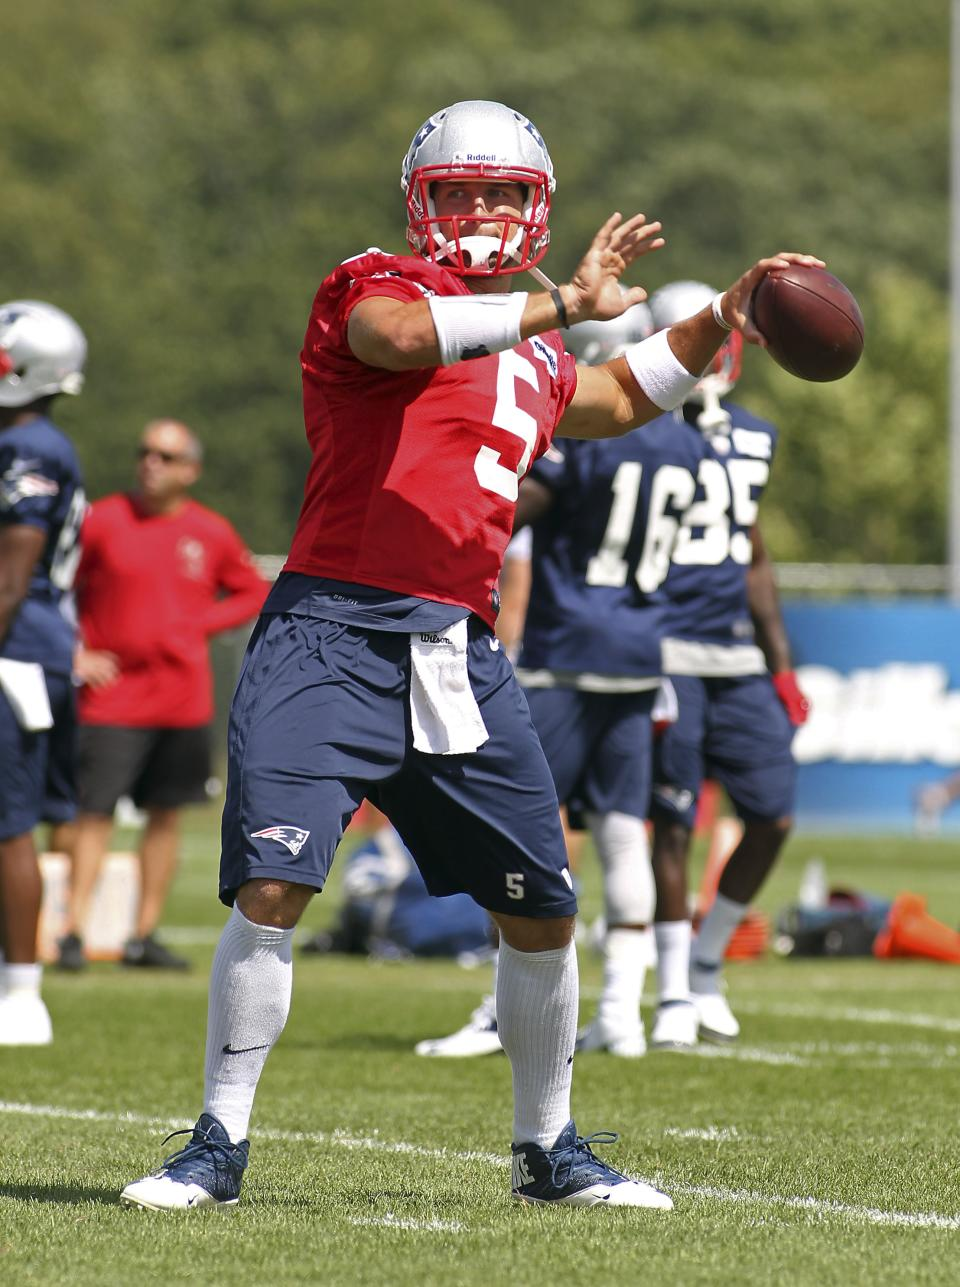 New England Patriots quarterback Tim Tebow throws a pass during the Patriots' joint workout with the Tampa Bay Buccaneers at NFL football training camp, in Foxborough, Mass., Thursday, Aug. 15, 2013. (AP Photo/Stew Milne)